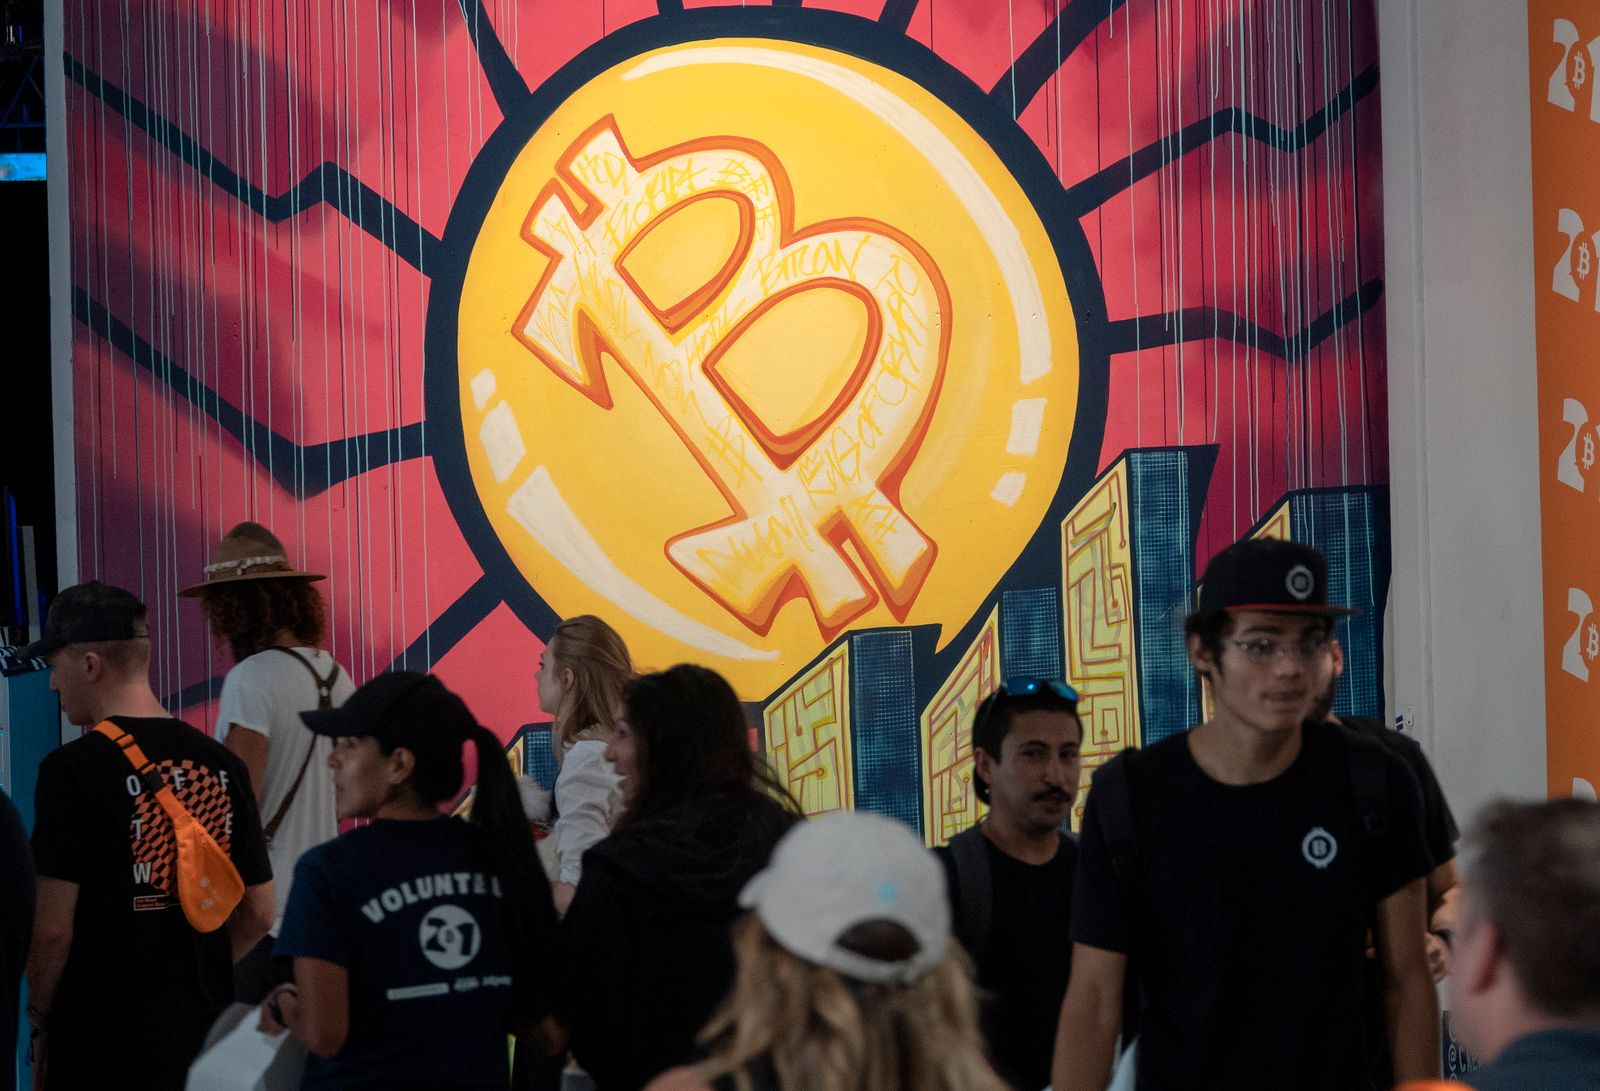 Bitcoin 2021, the world?s largest-ever crypto-currency conference, in Miami